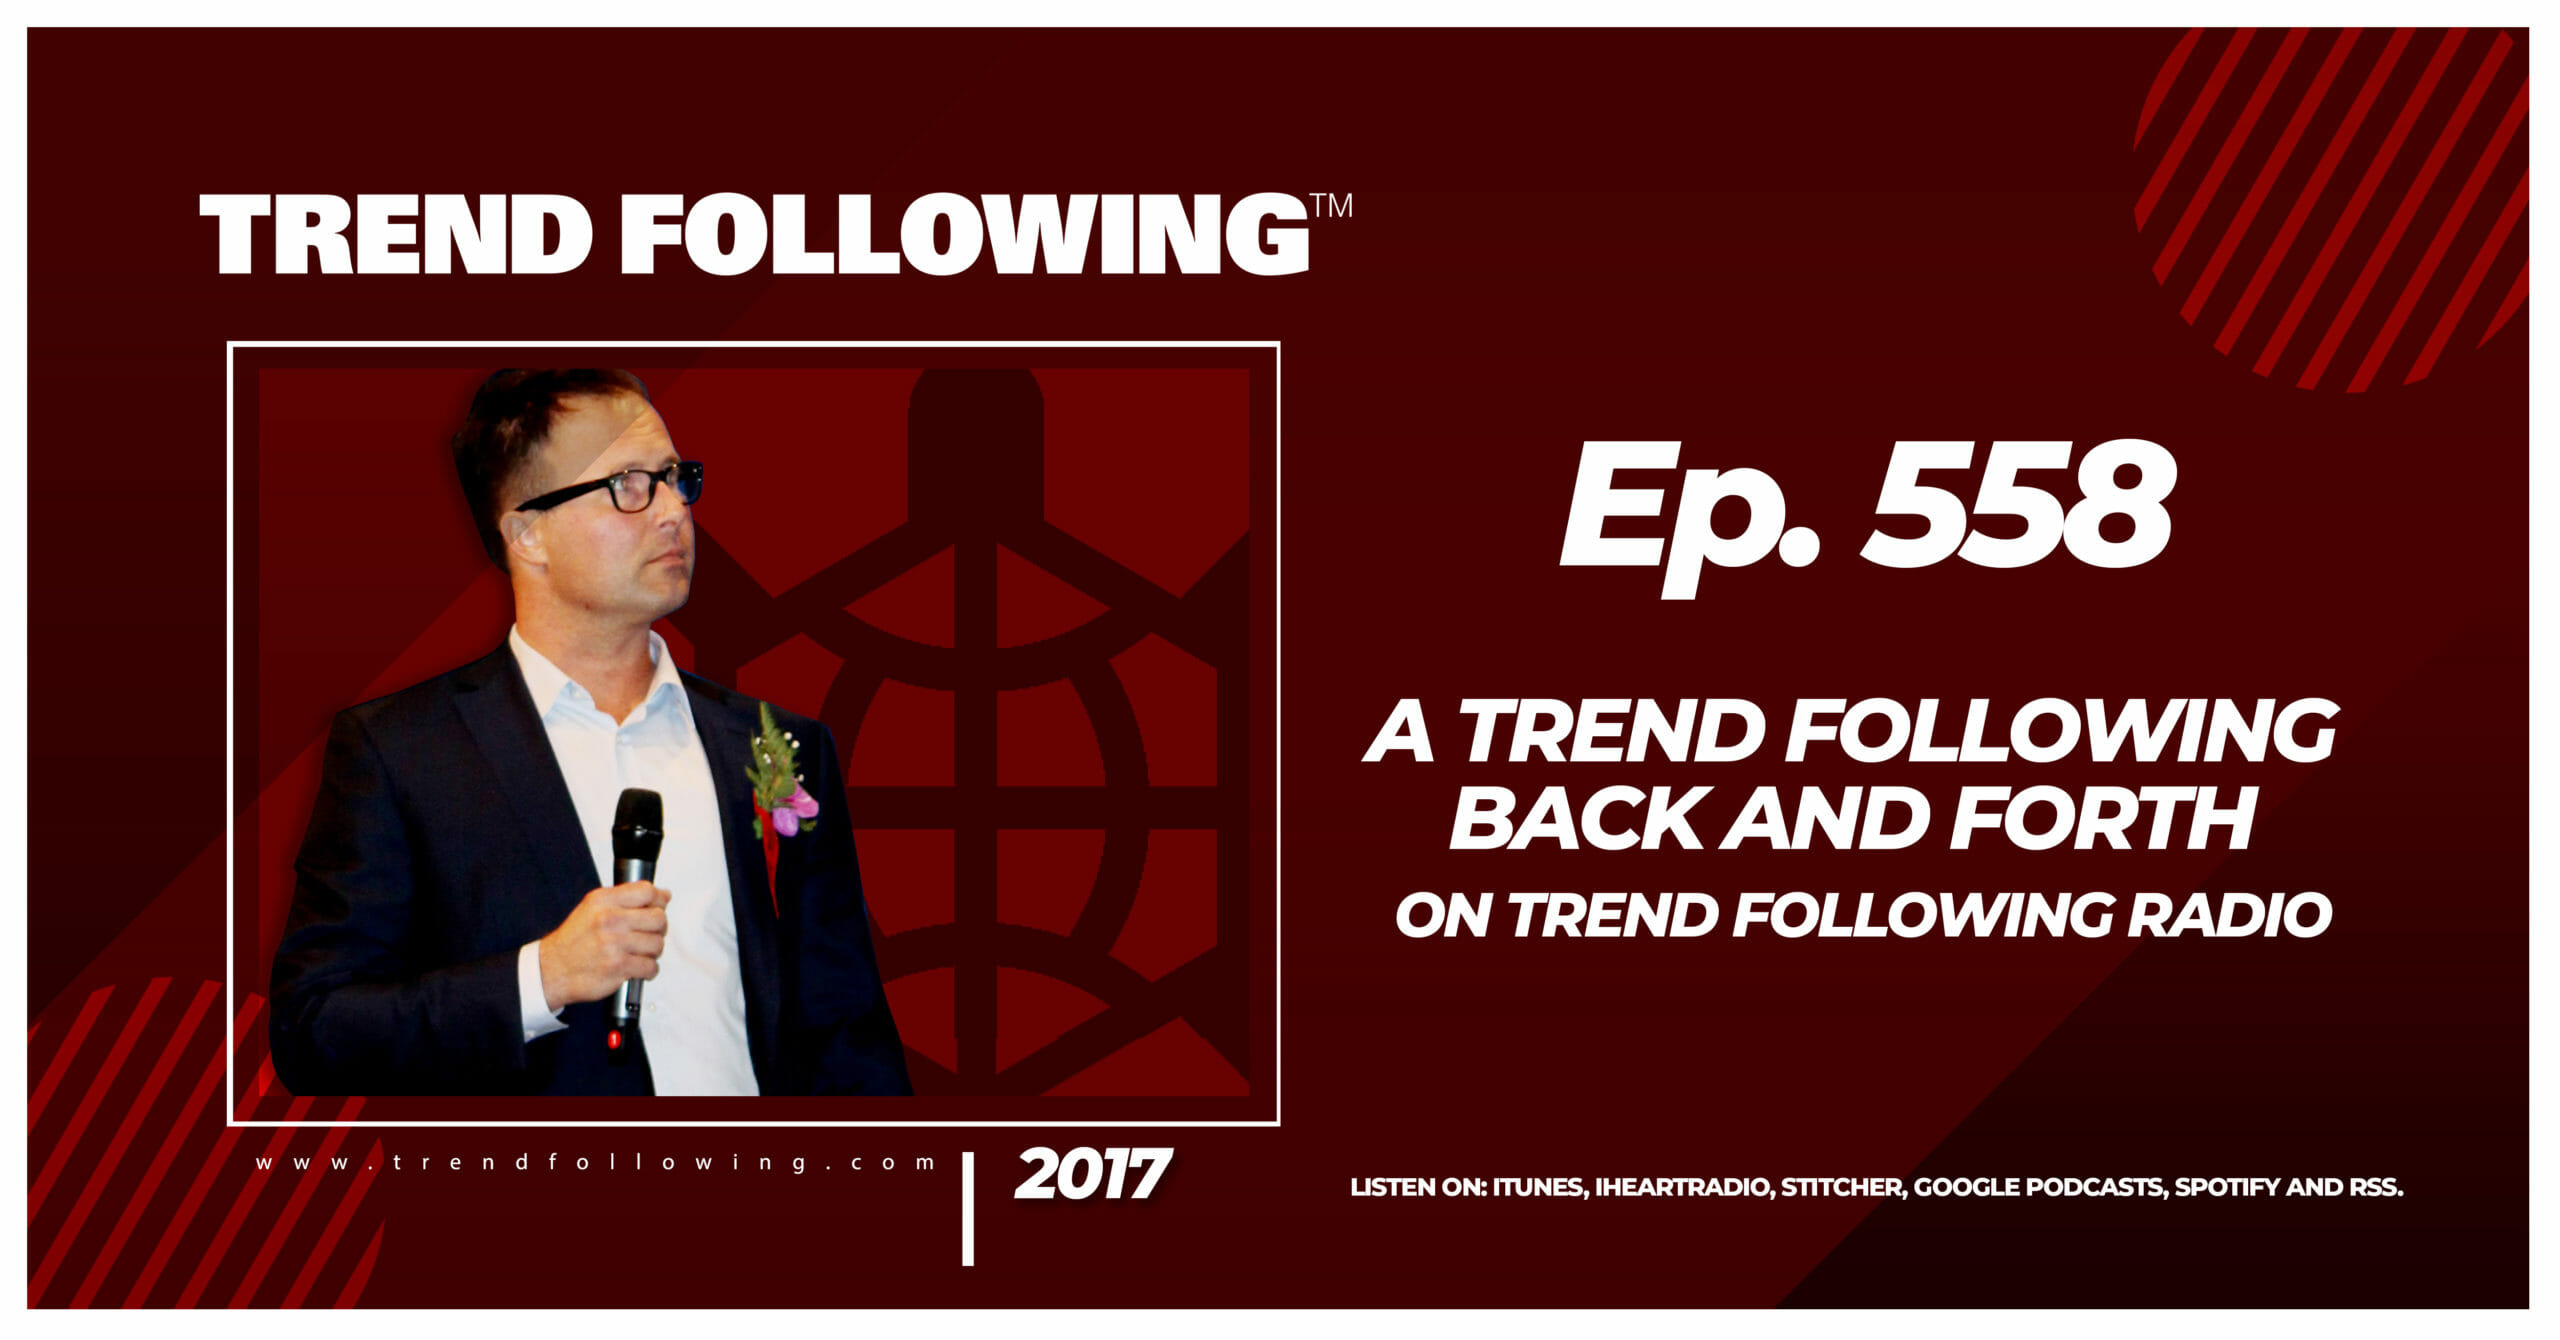 A Trend Following Back and Forth on Trend Following Radio